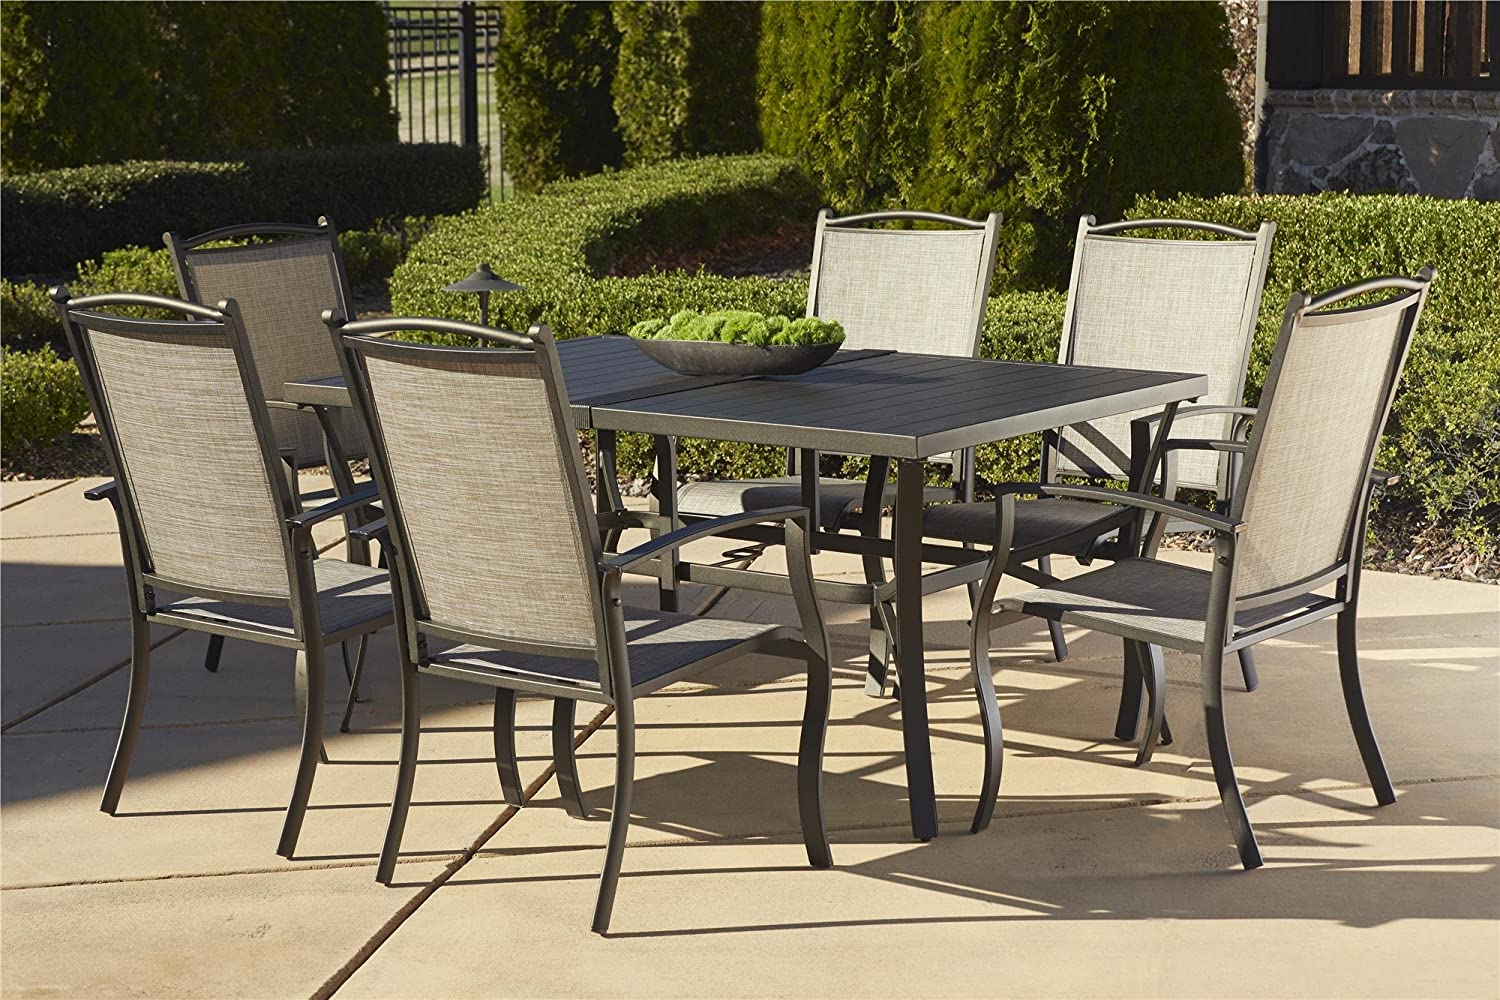 sling frame cascade metal shop patio living oakland dining piece set black pd